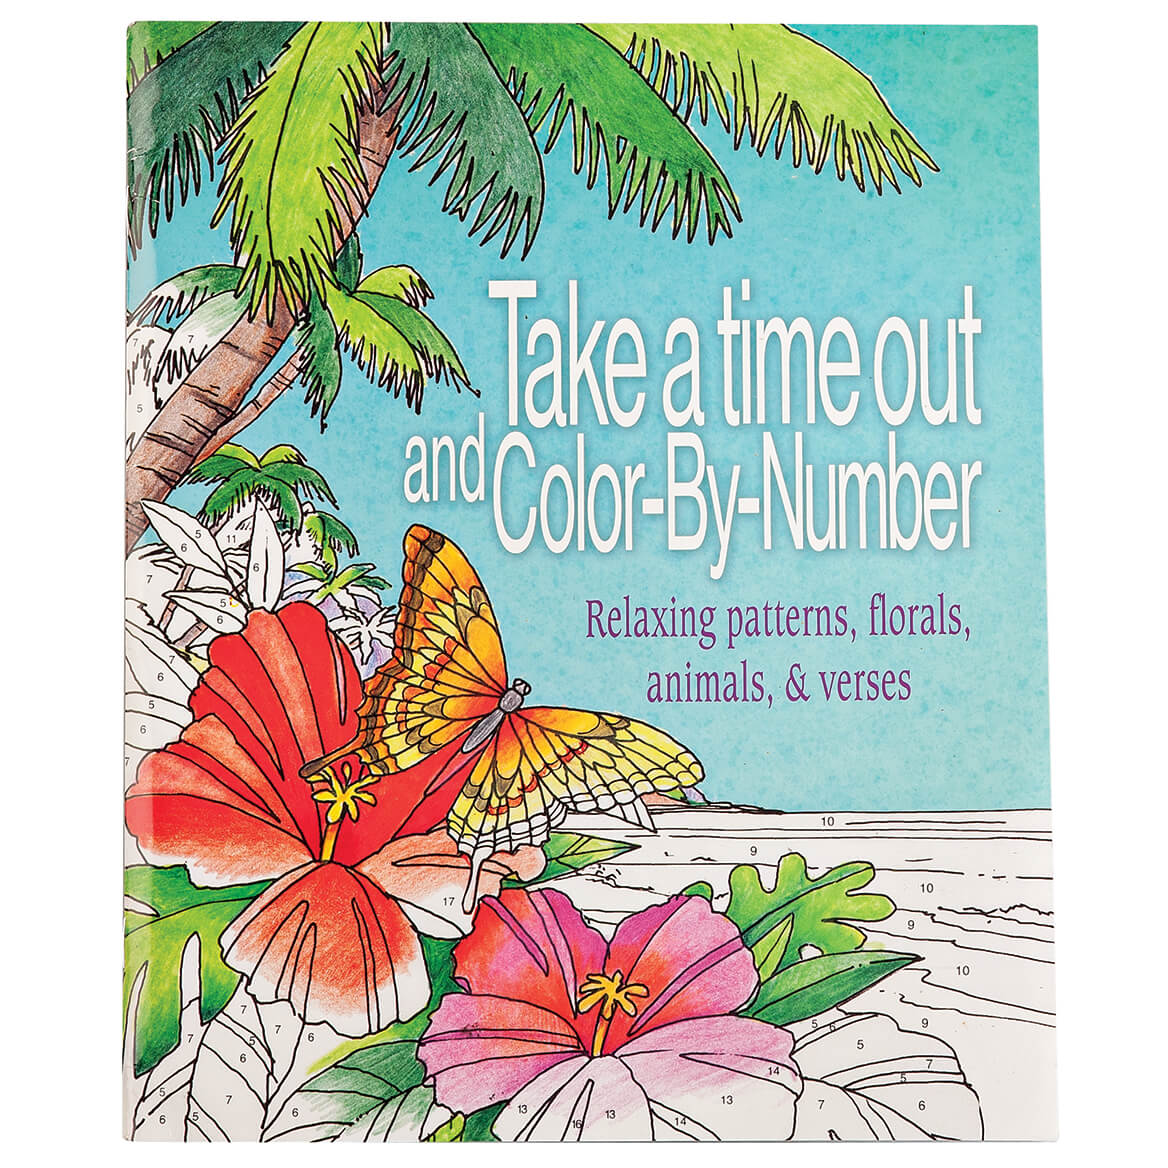 Take Time Out Color-by-Number Book - Adult Coloring - Miles Kimball